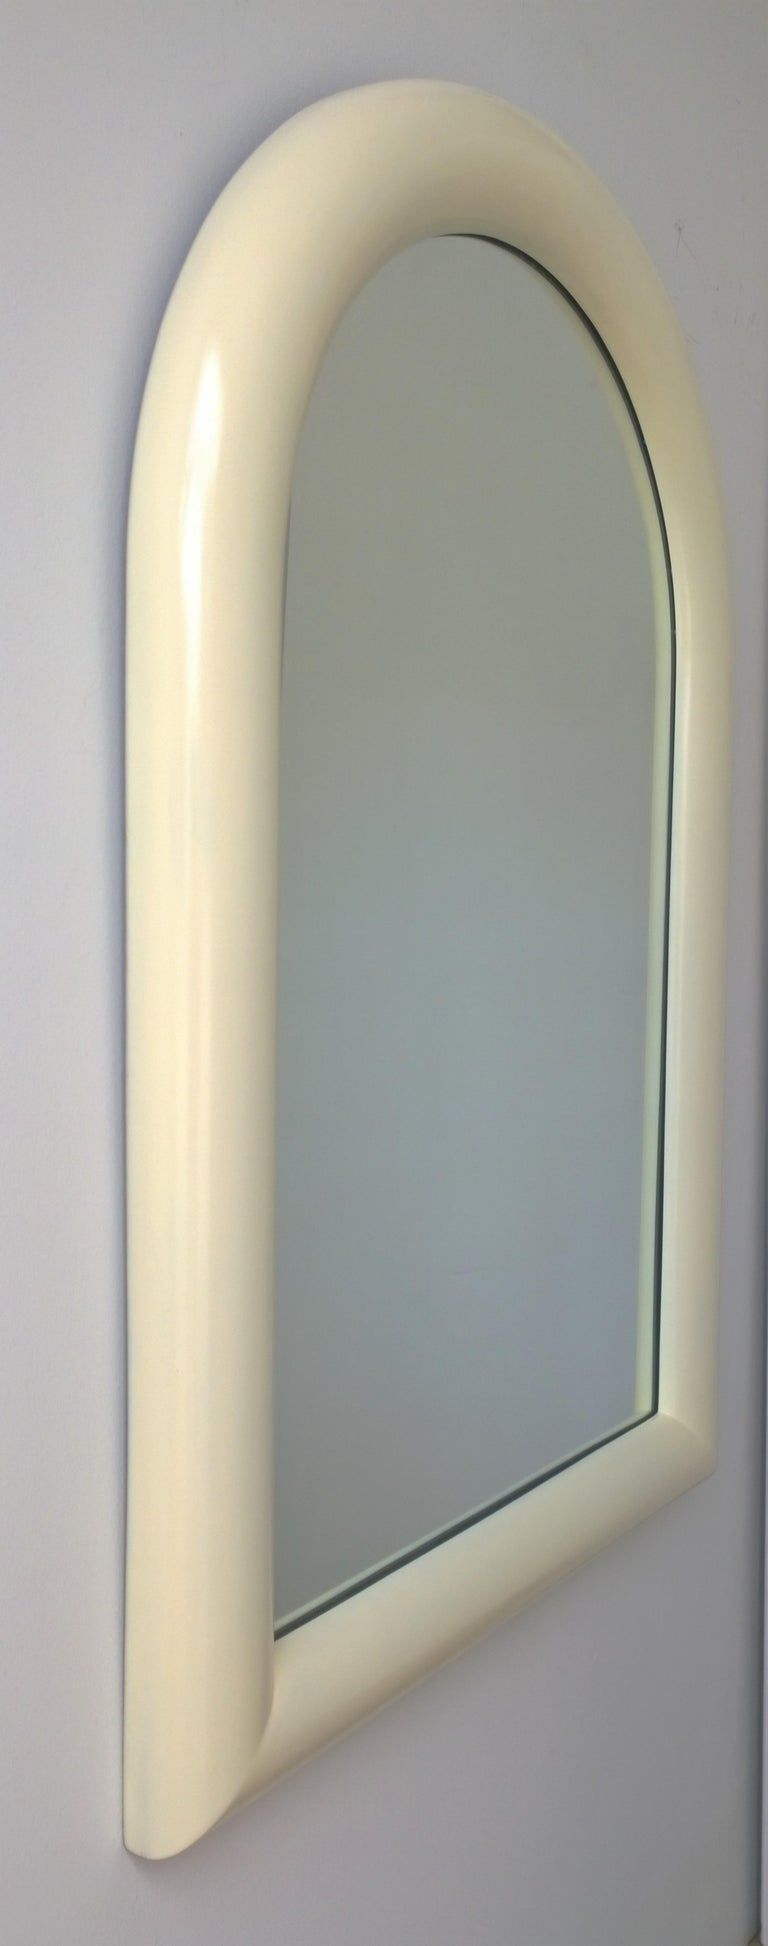 Mid-Century Modern Pierre Cardin Attributed Arched Wall Mirror Newly Lacquered Wood in Off-White For Sale